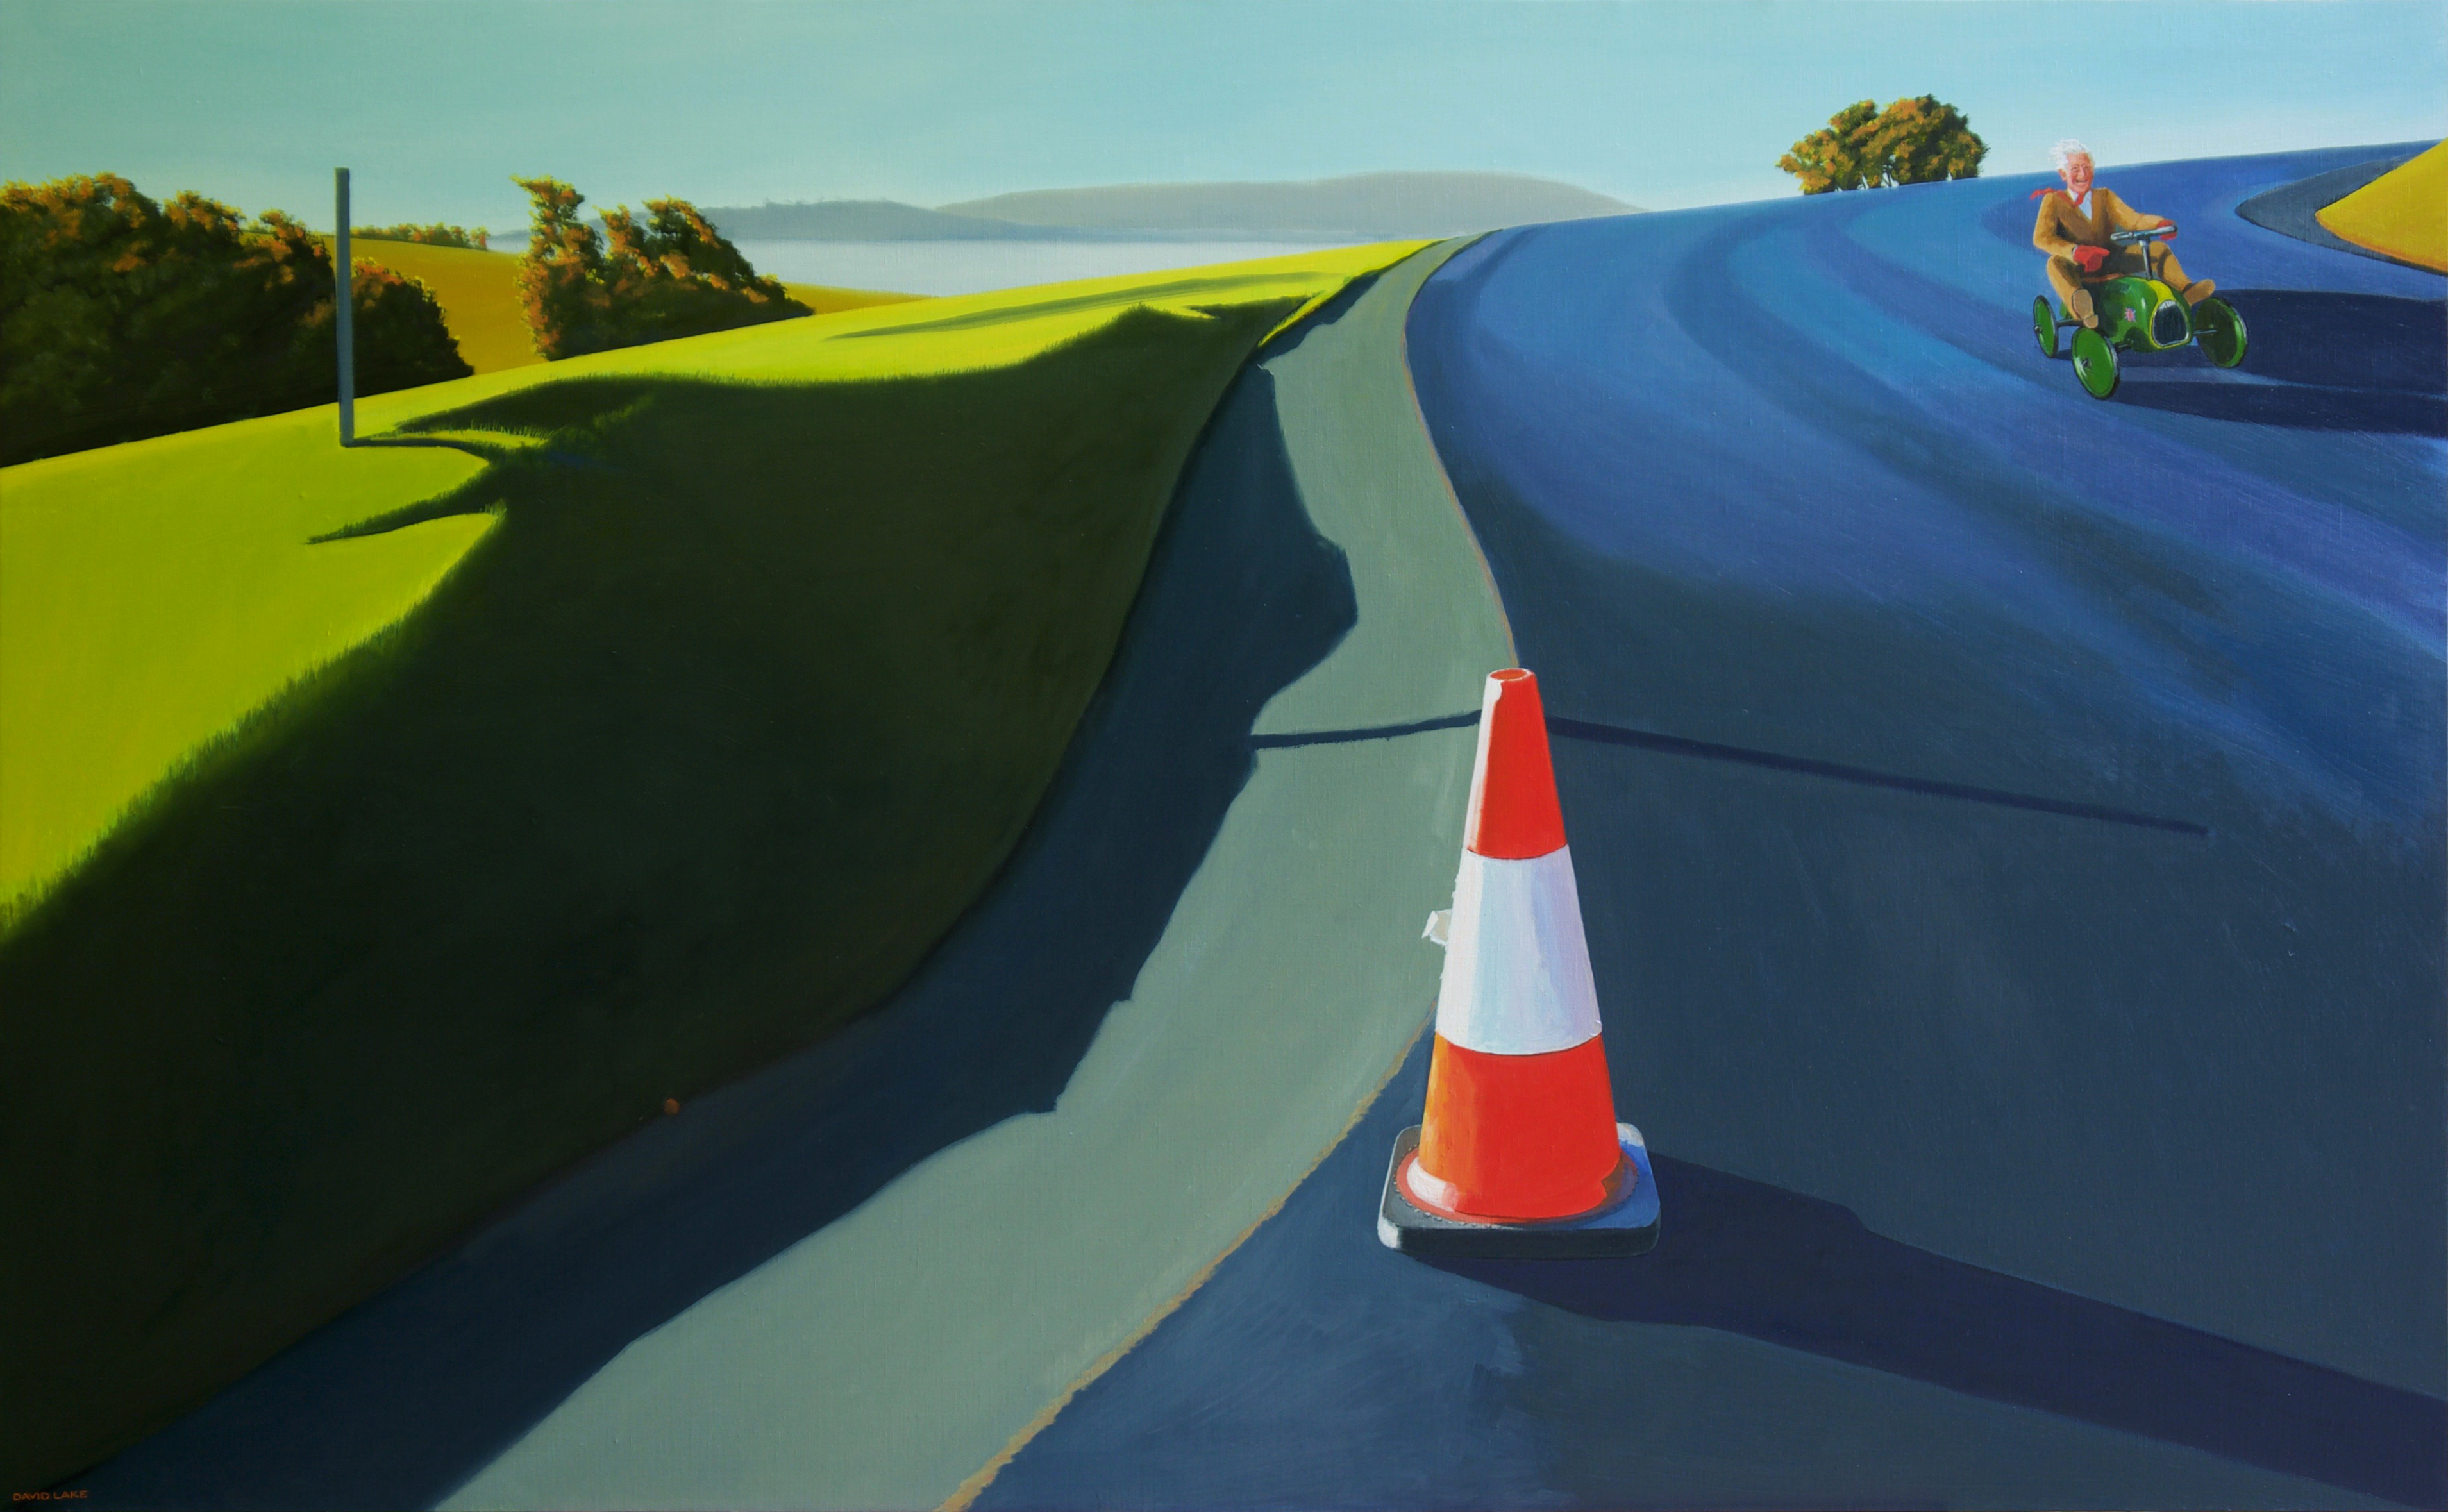 'Ragged Cone and Racy Royal (Look Mum, no brakes!)' - oil on linen - 94 cm H x 152 cm W - frame 97 cm H x 155 cm H